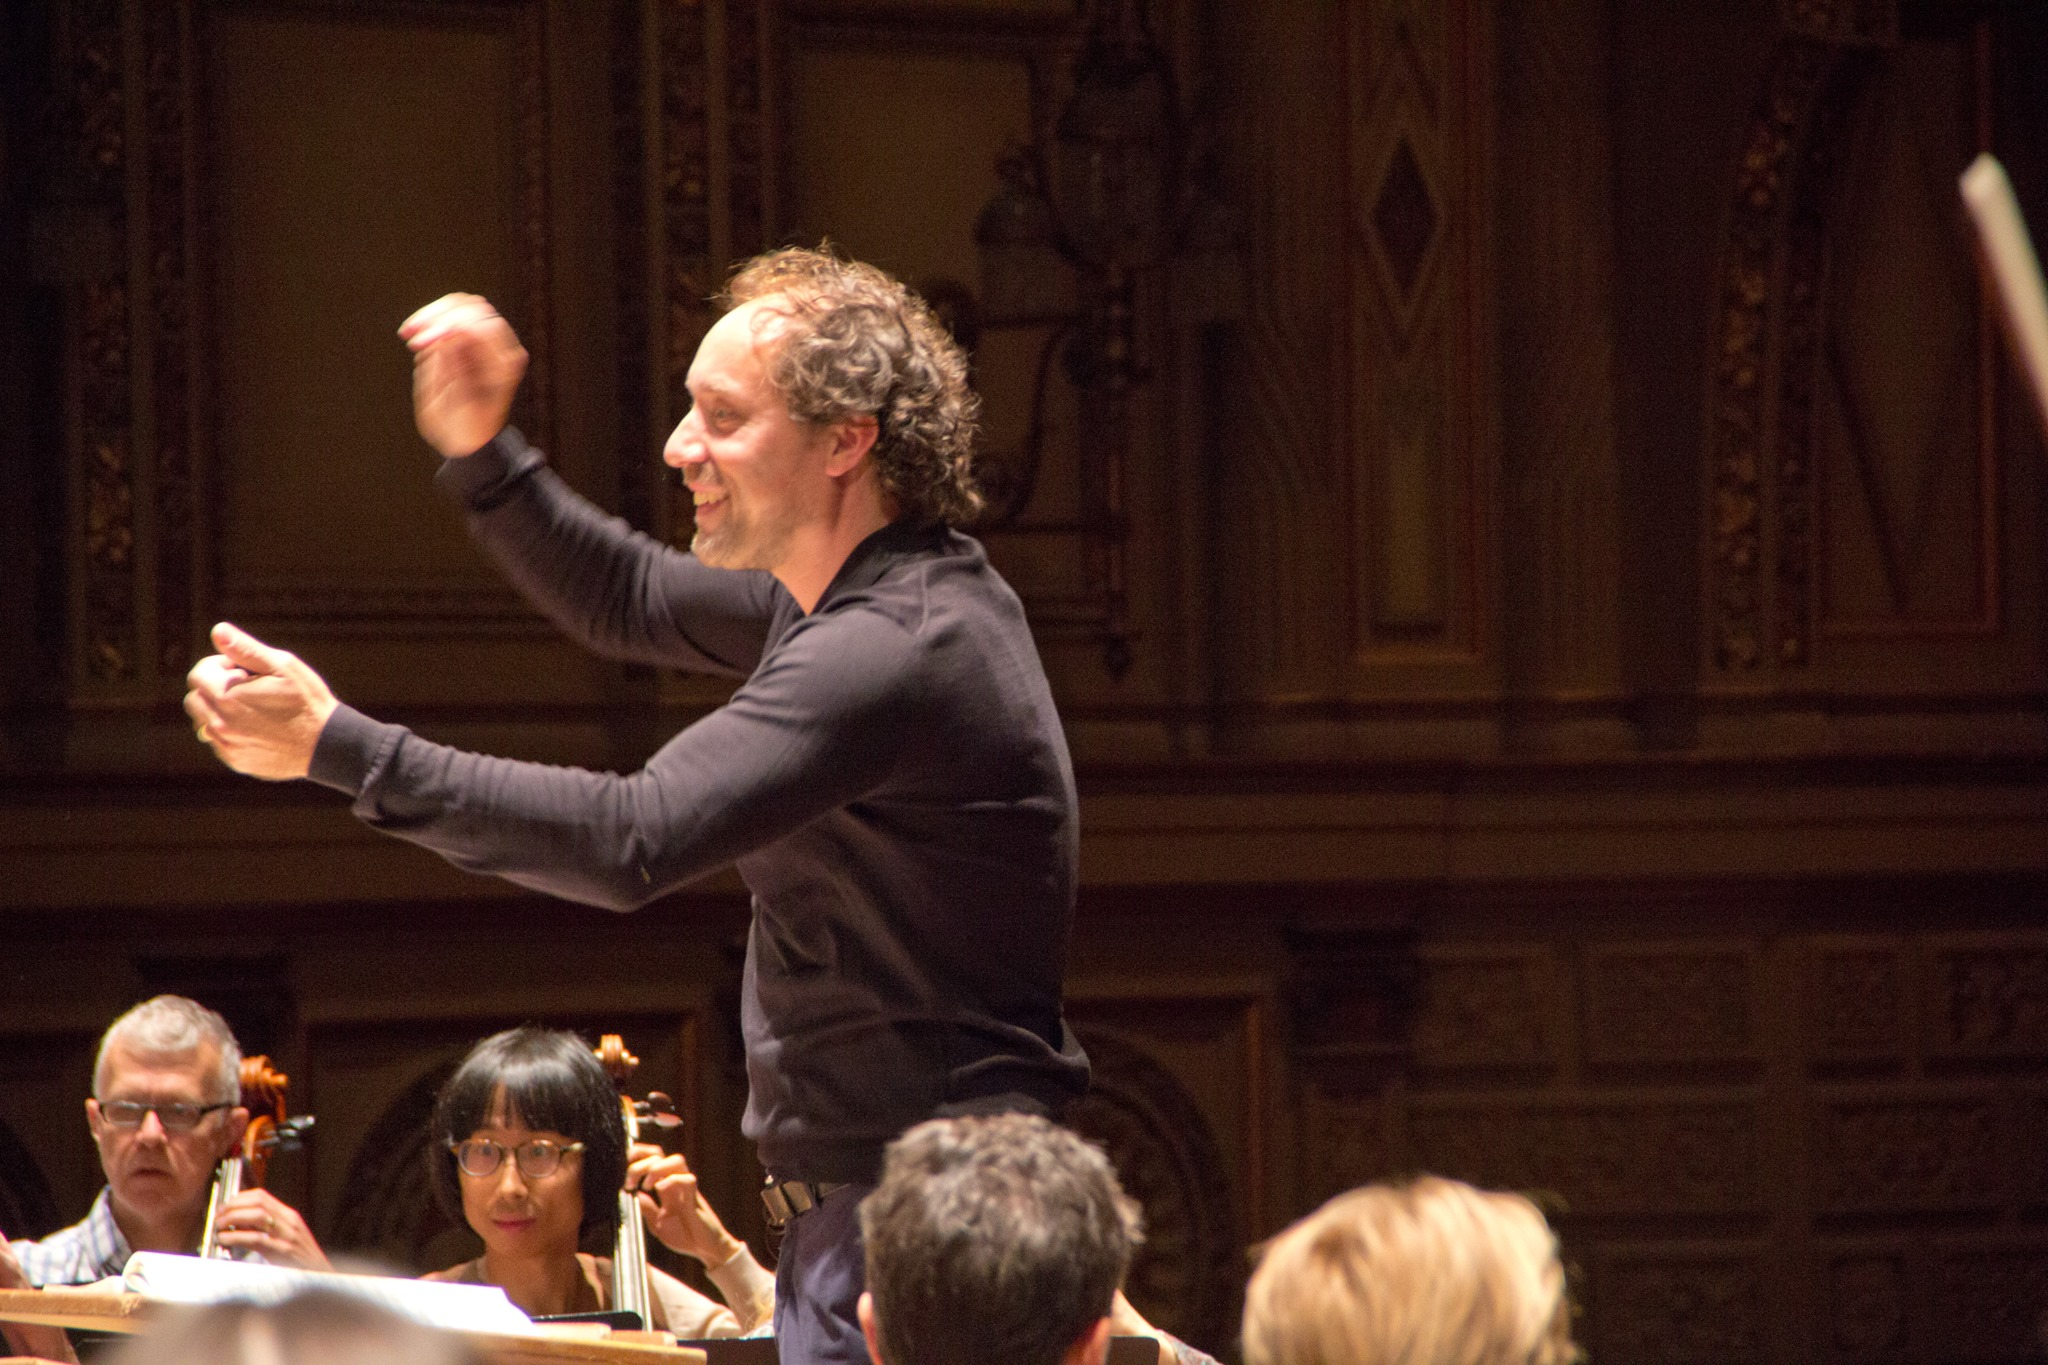 All photos courtesy of Vancouver Symphony